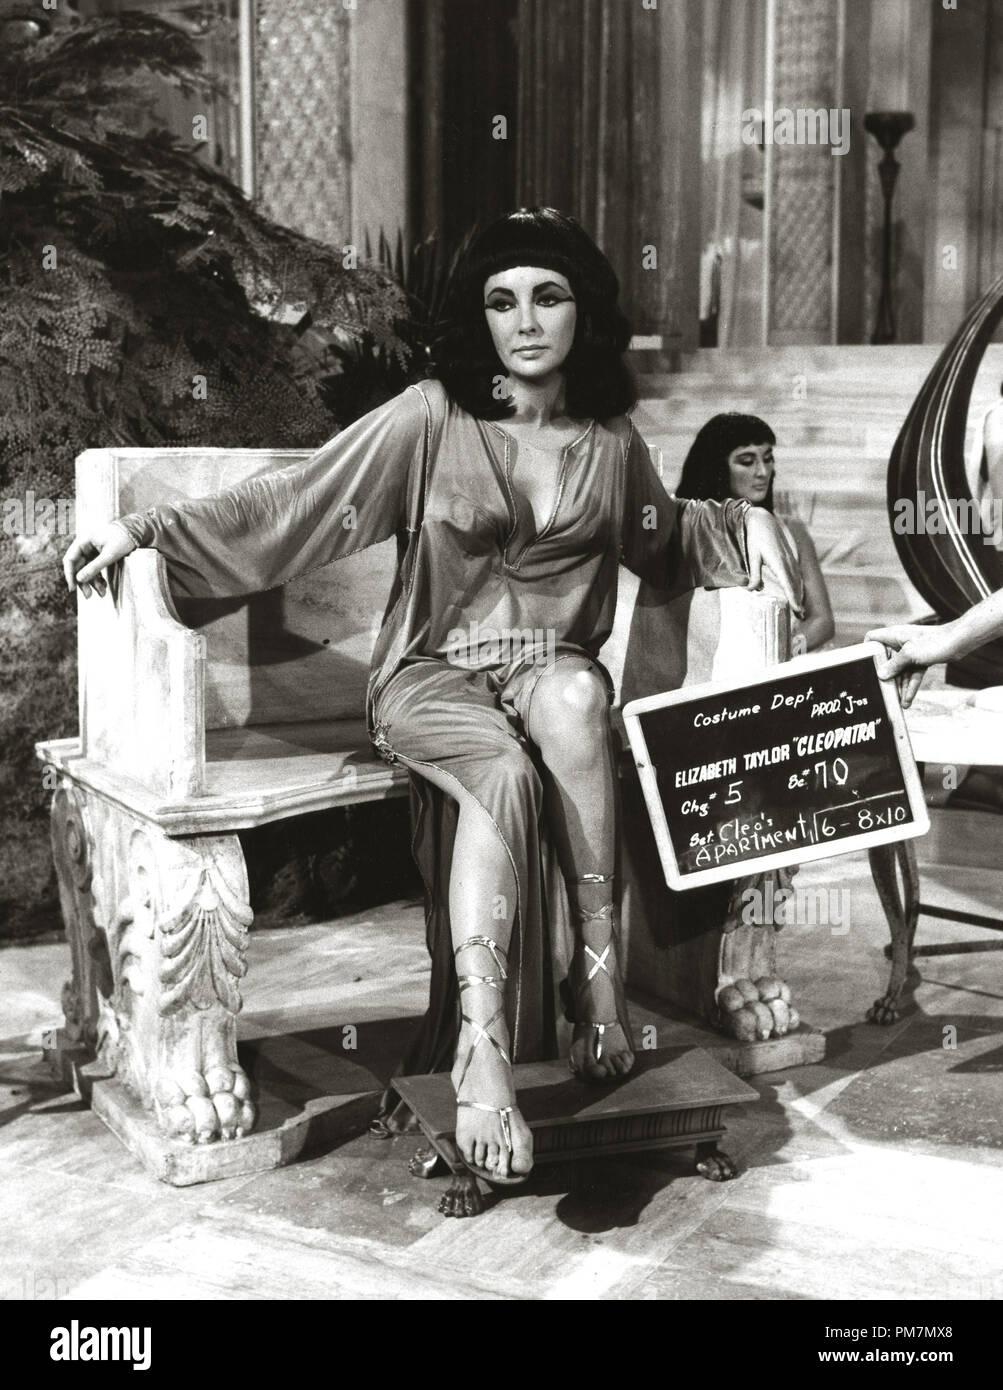 Cleopatra Movie Costume 1963 High Resolution Stock Photography And Images Alamy